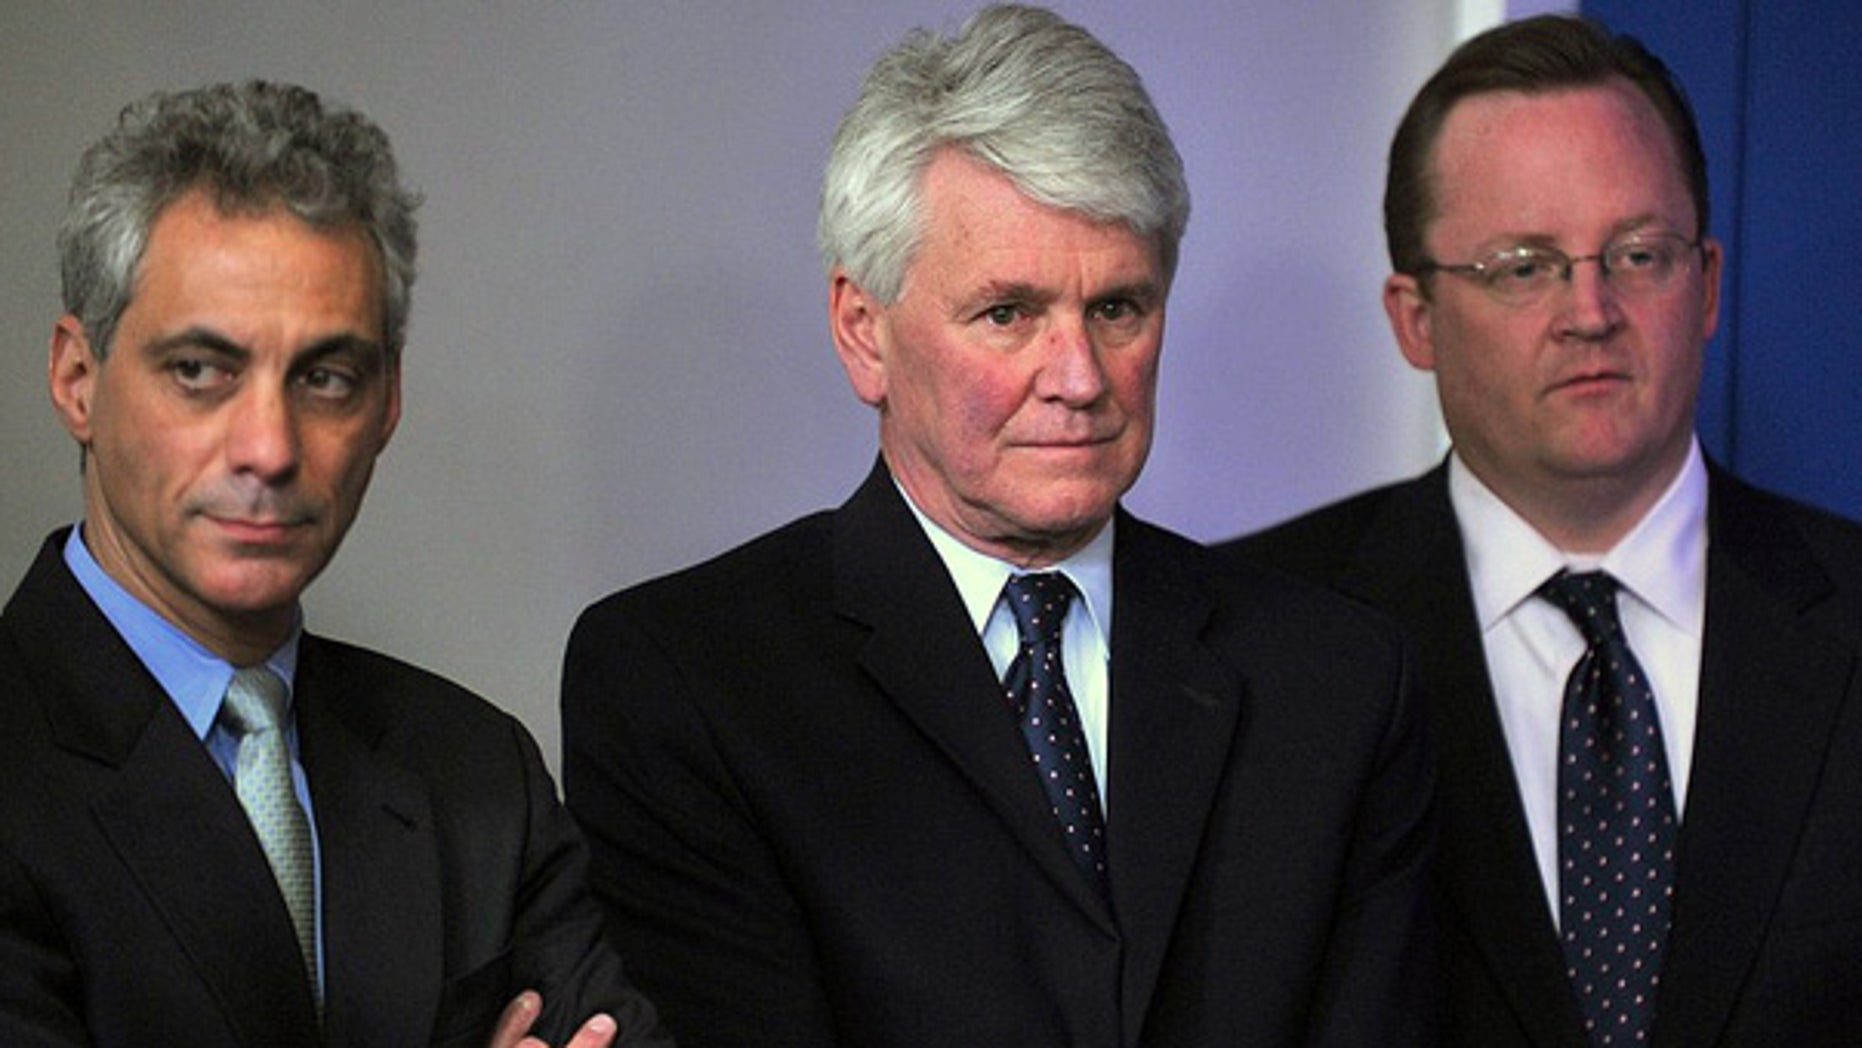 File: White House Chief of Staff Rahm Emanuel, left, stands with former White House Counsel Greg Craig and Press Secretary Robert Gibbs at a White House briefing. (AFP)